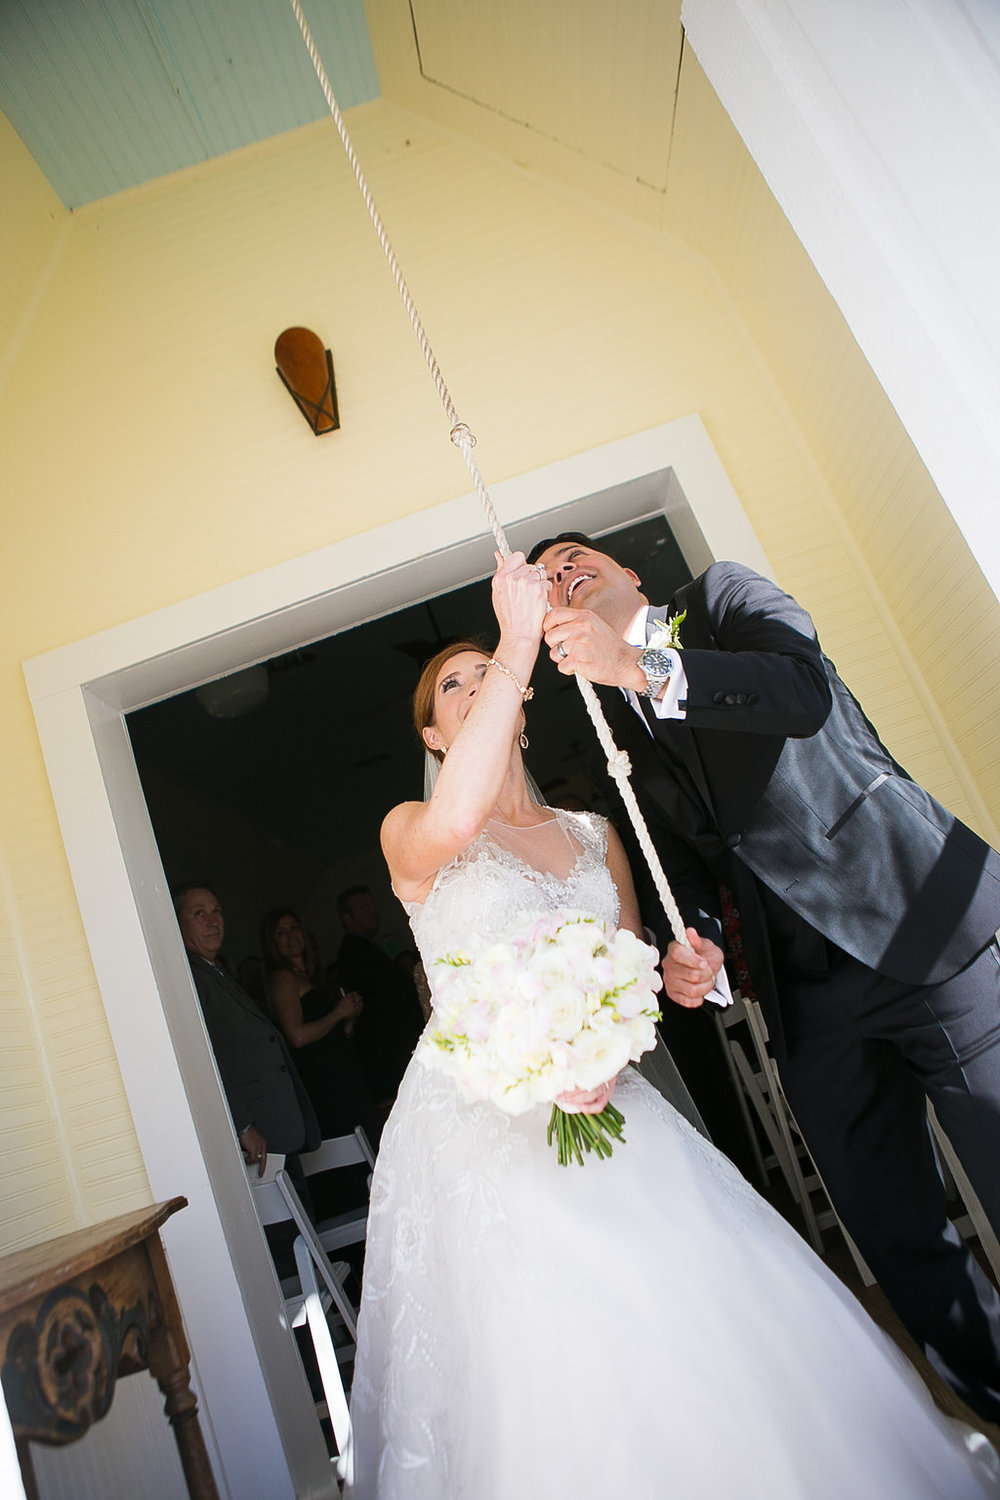 Bride & groom ringing bell at Star Hill Ranch chapel